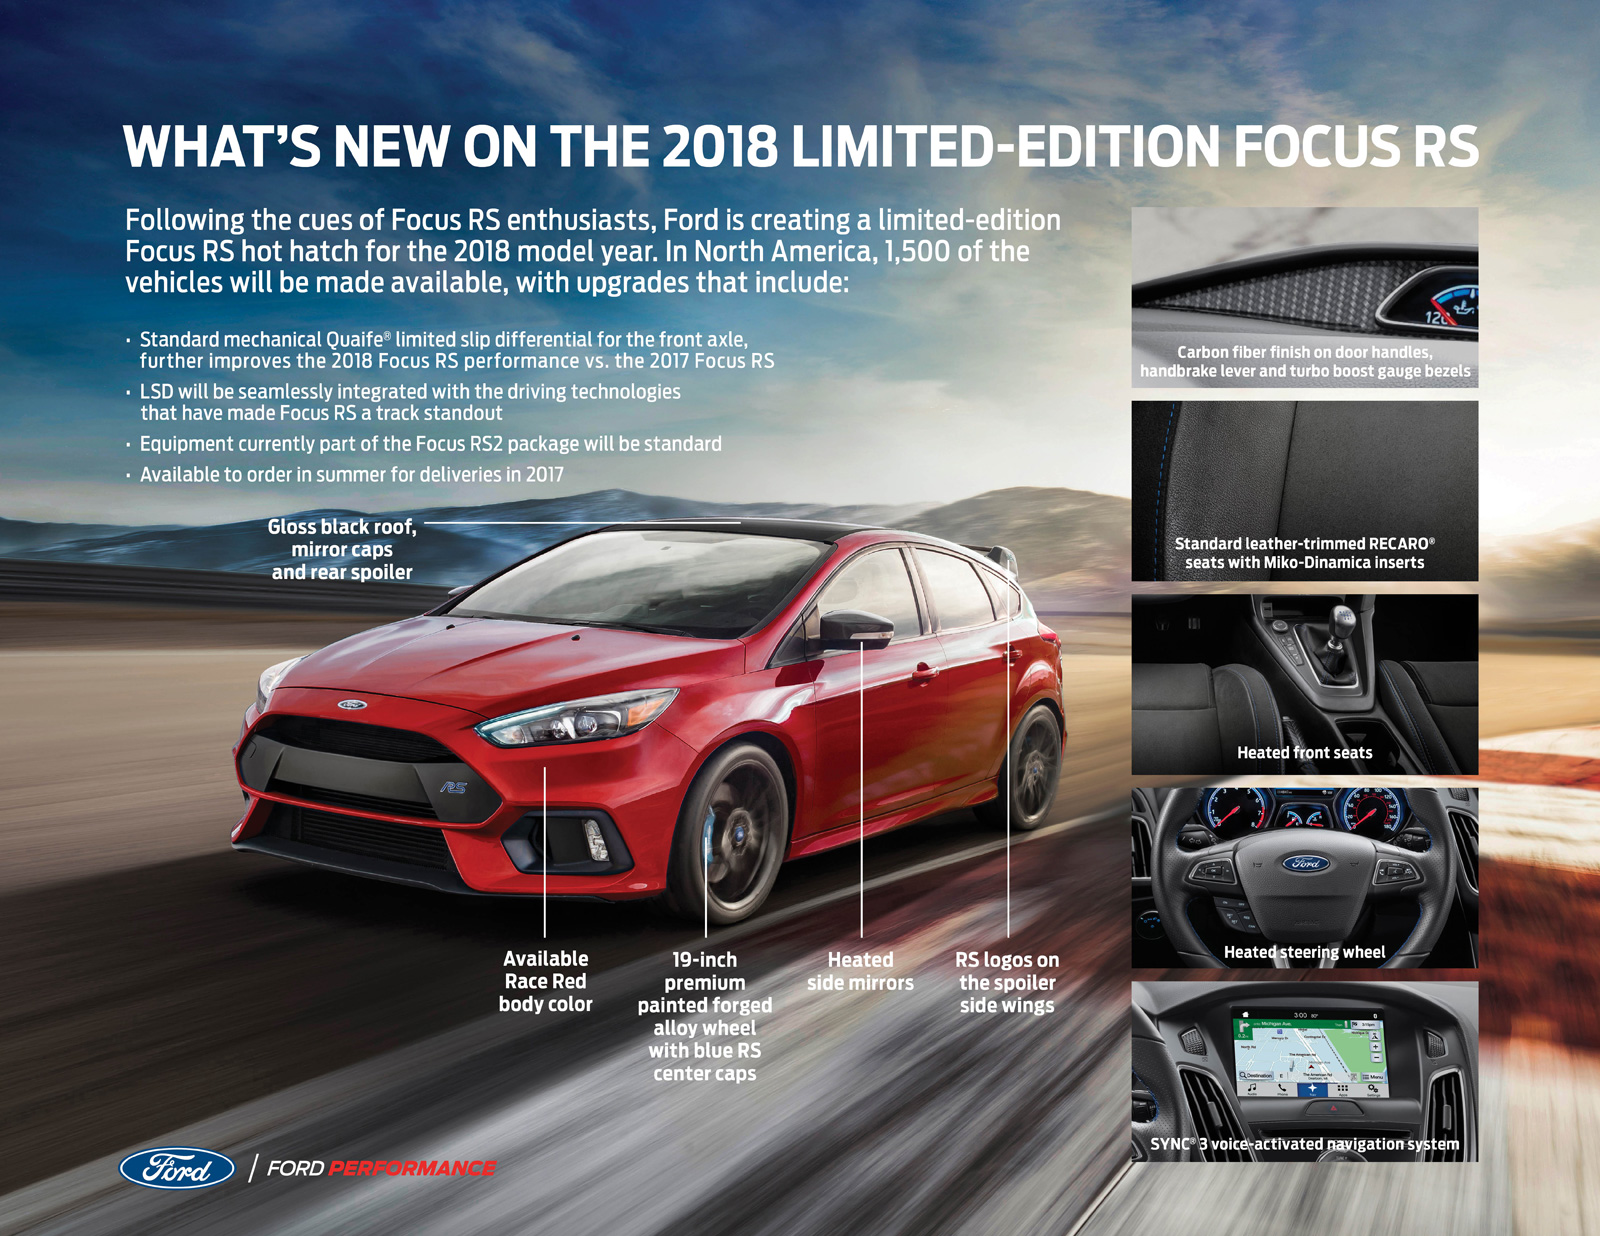 2018 Limited Edition Focus Rs Graphic